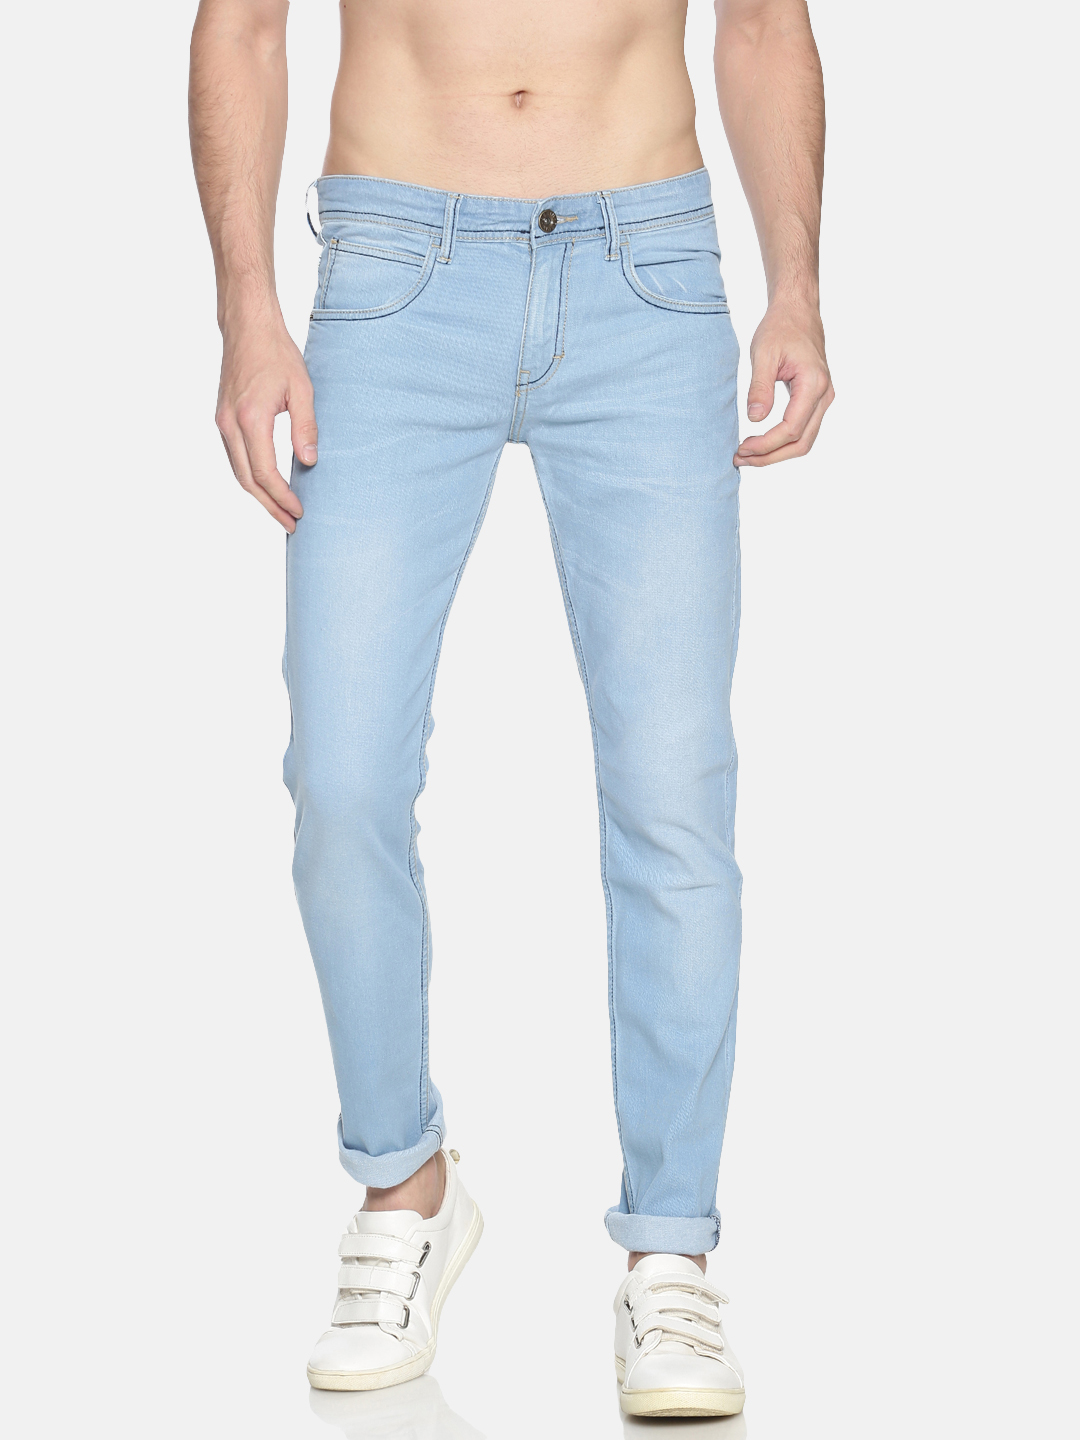 Chennis | Chennis Men's Casual Clean Look Jeans, Sky Blue